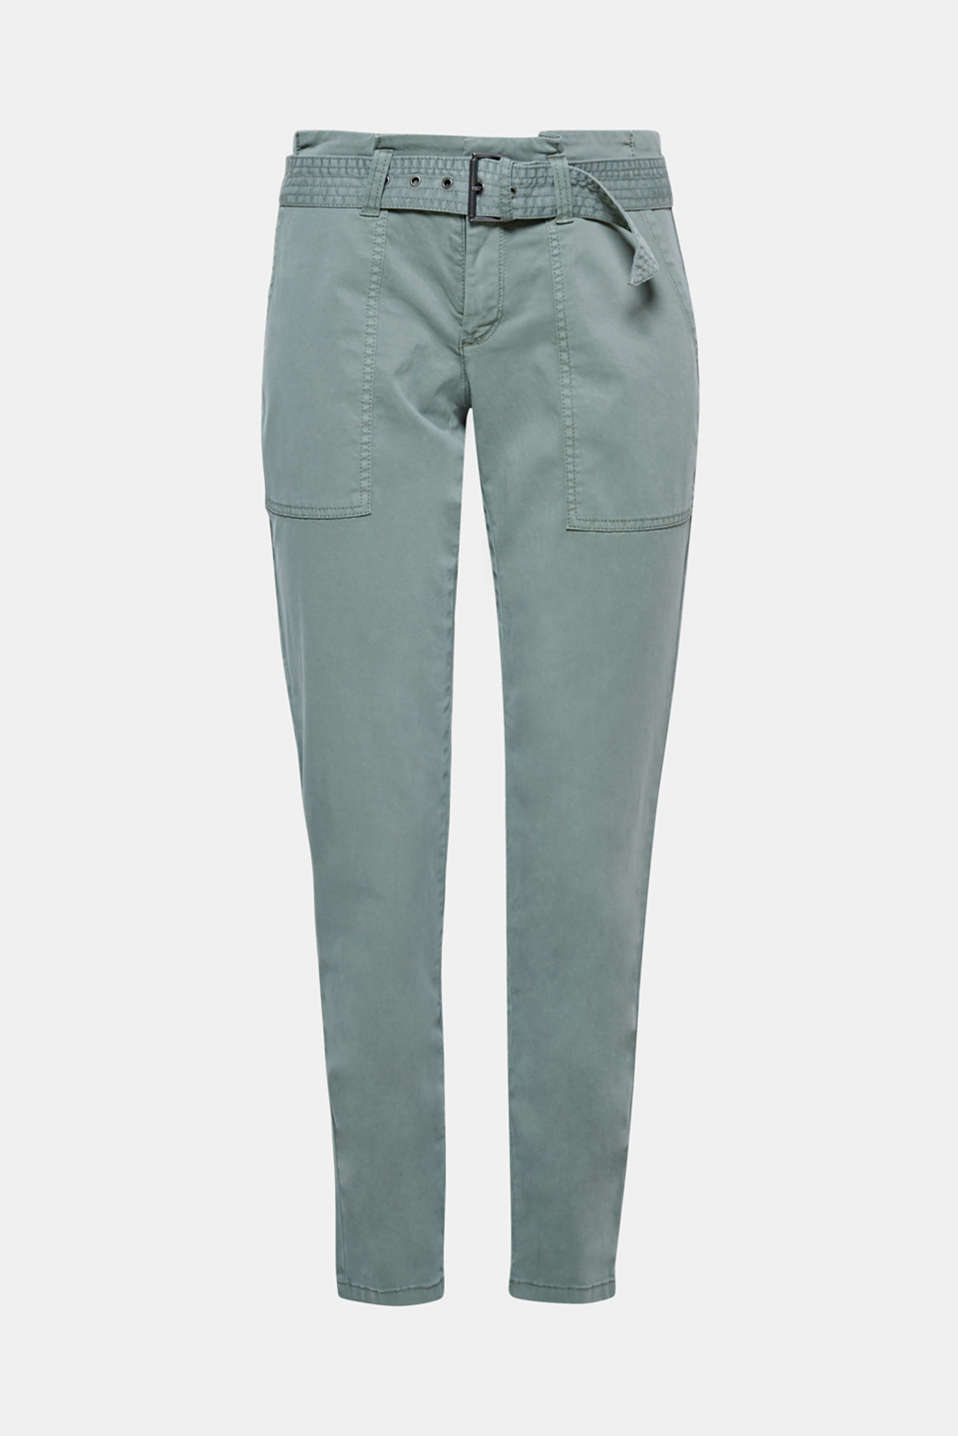 New silhouette in a laid-back look: These soft trousers feature an on-trend paper bag waistband and front patch pockets for a really eye-catching look!